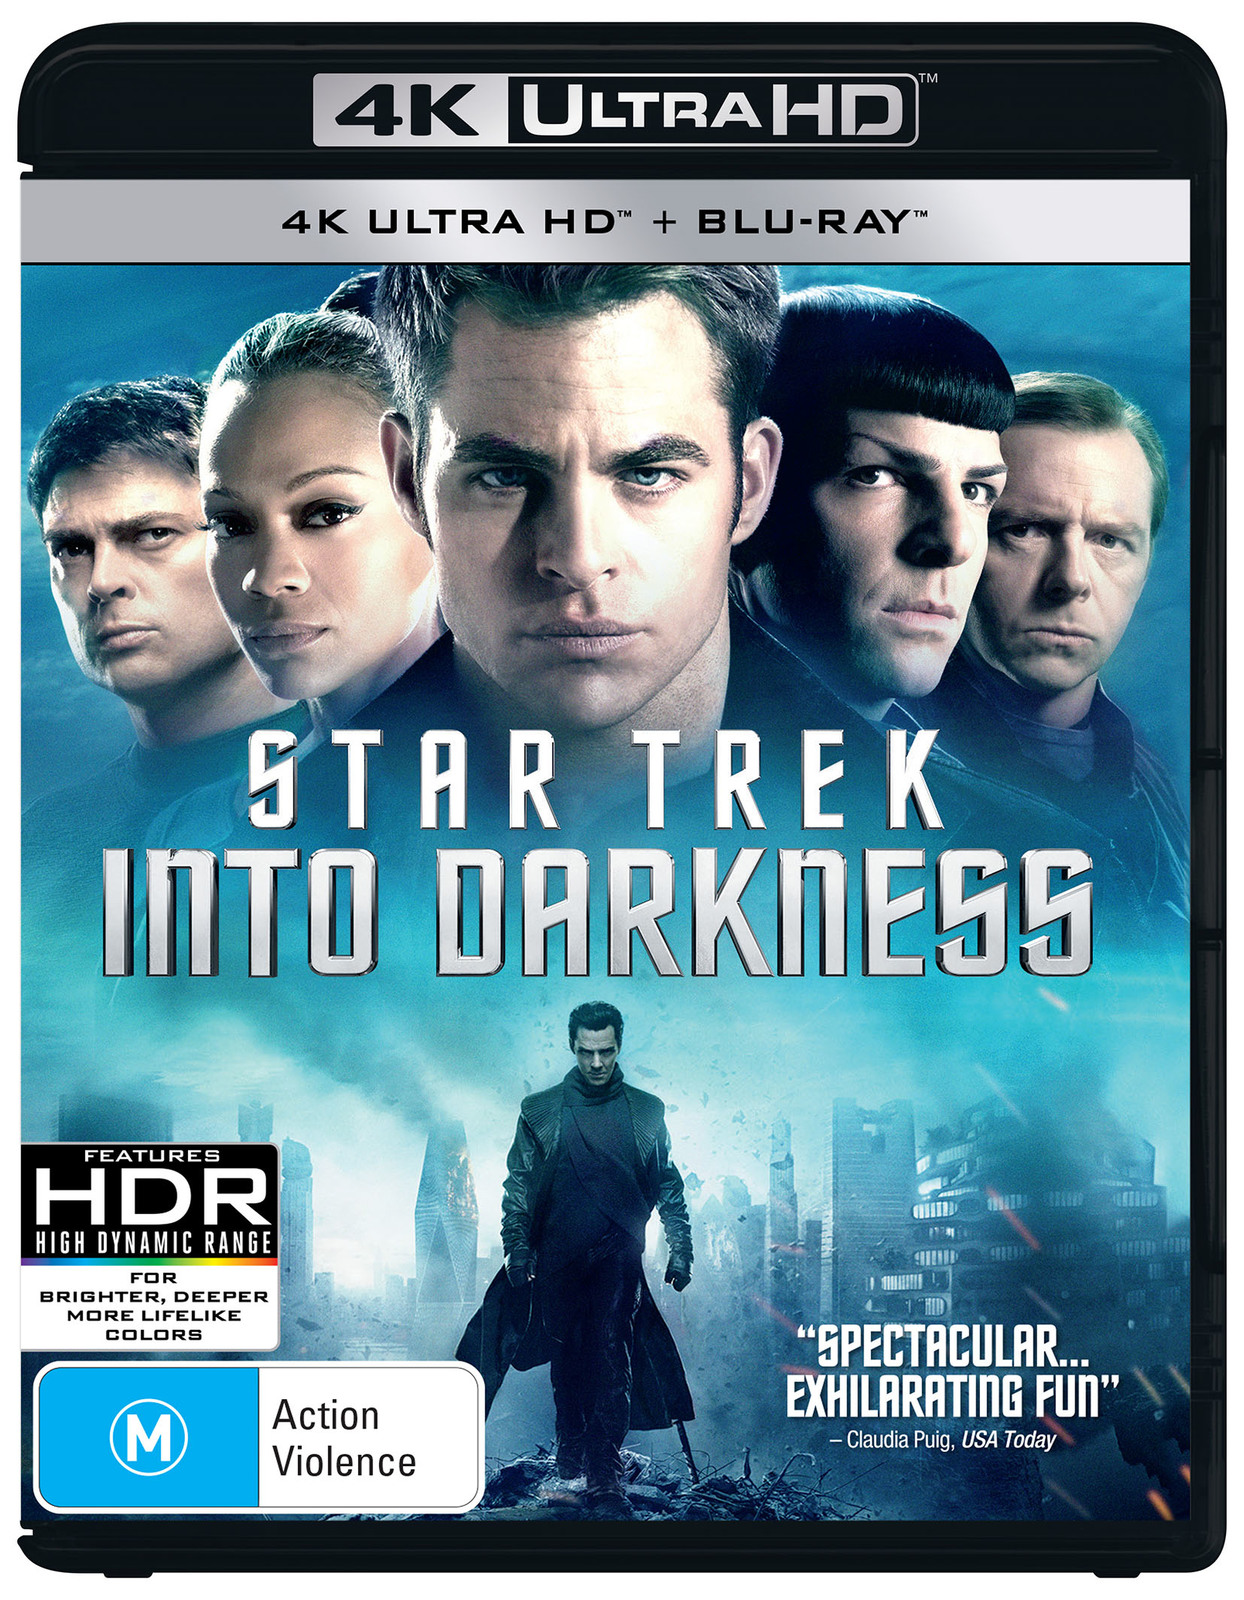 Star Trek: Into Darkness on Blu-ray, UHD Blu-ray image